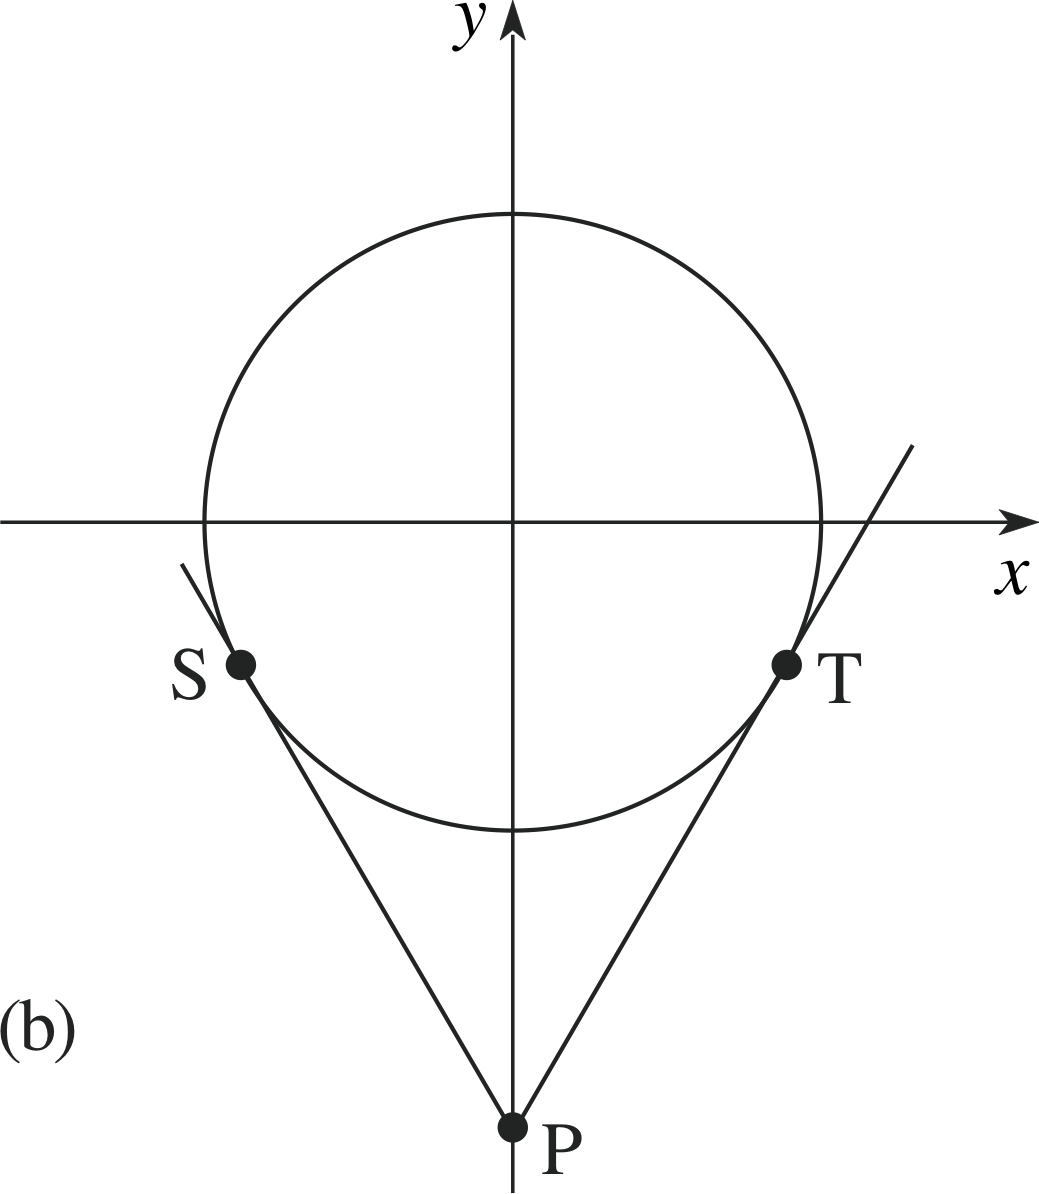 Equation Of A Circle With Radius R Centered At The Origin